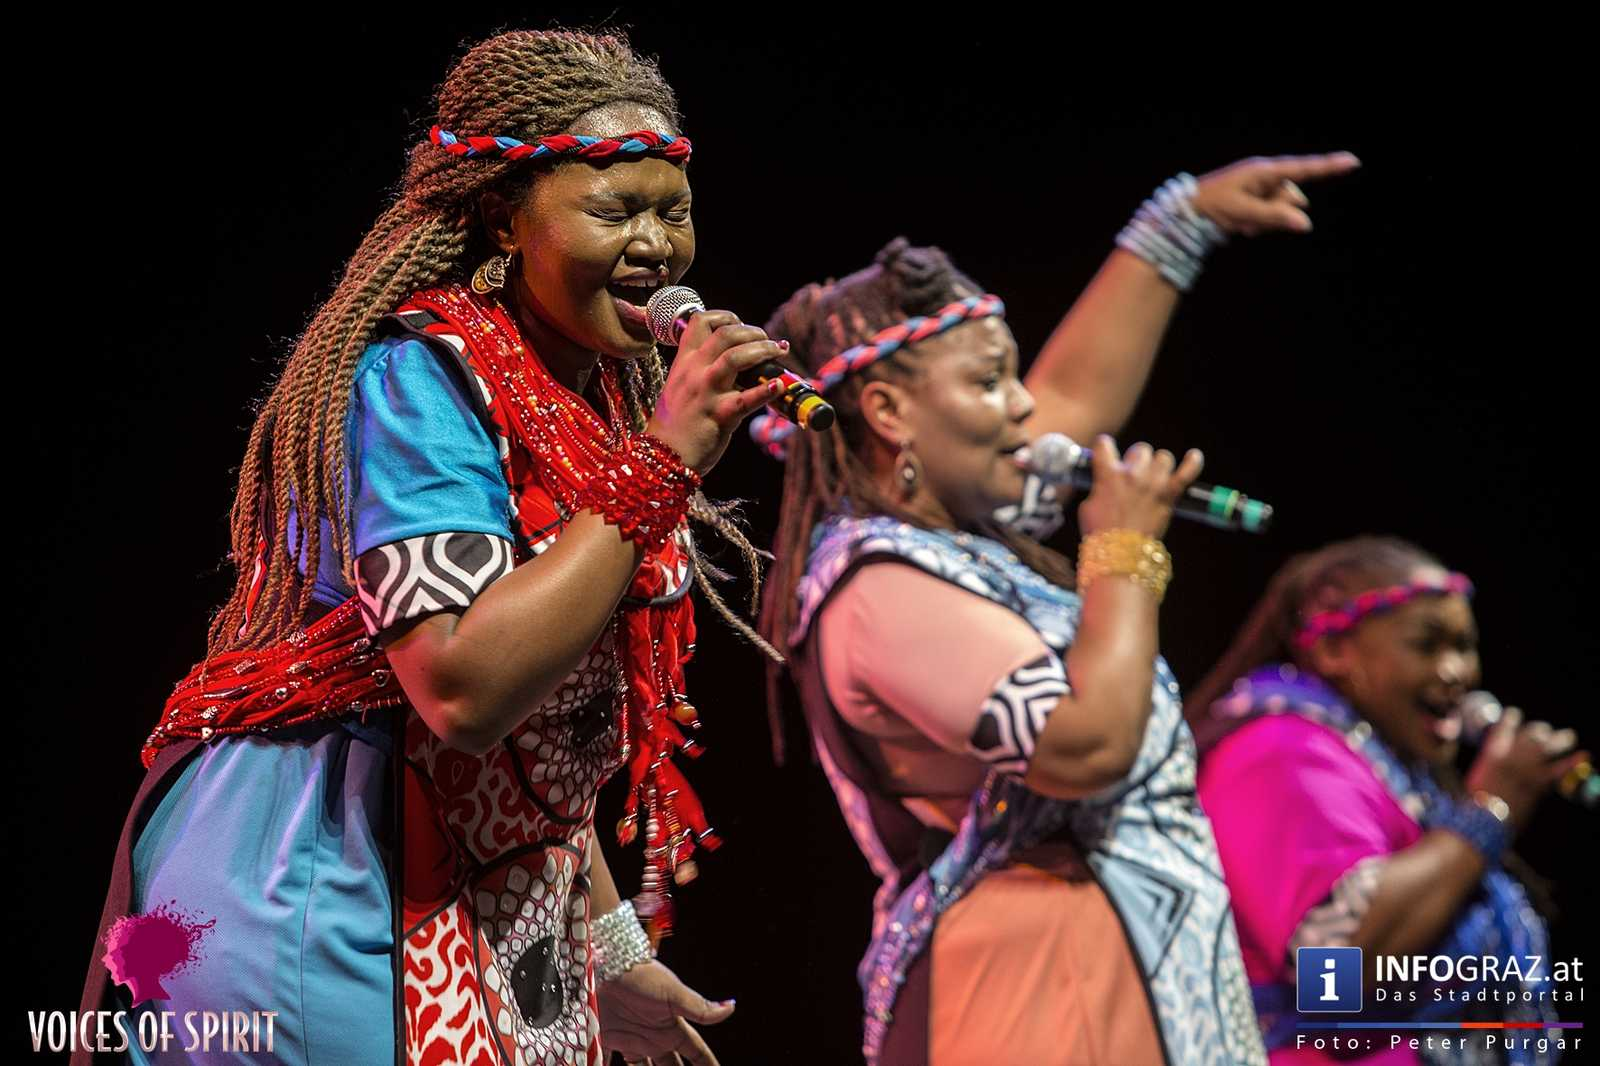 soweto gospel choir internationales chorfestival statdthalle graz voices of spirit eroeffnung festivals 2016 113